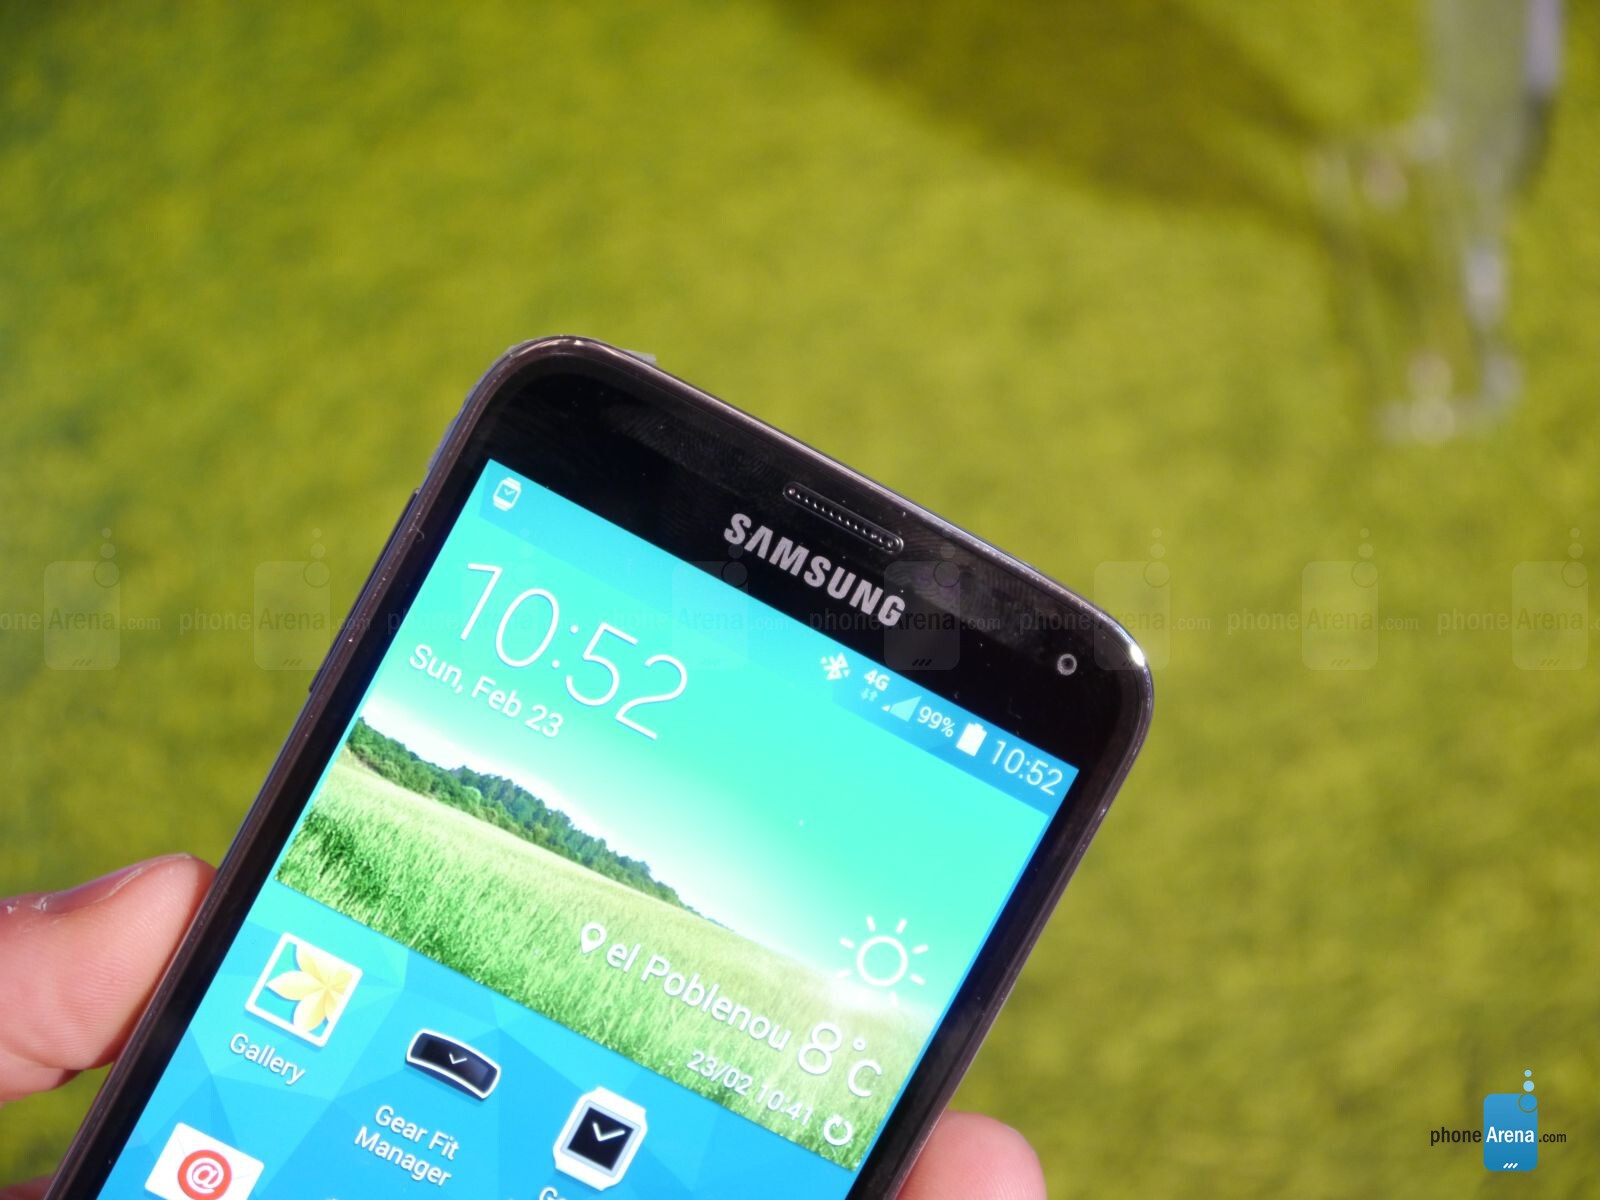 Samsung Galaxy s5 Hands on a